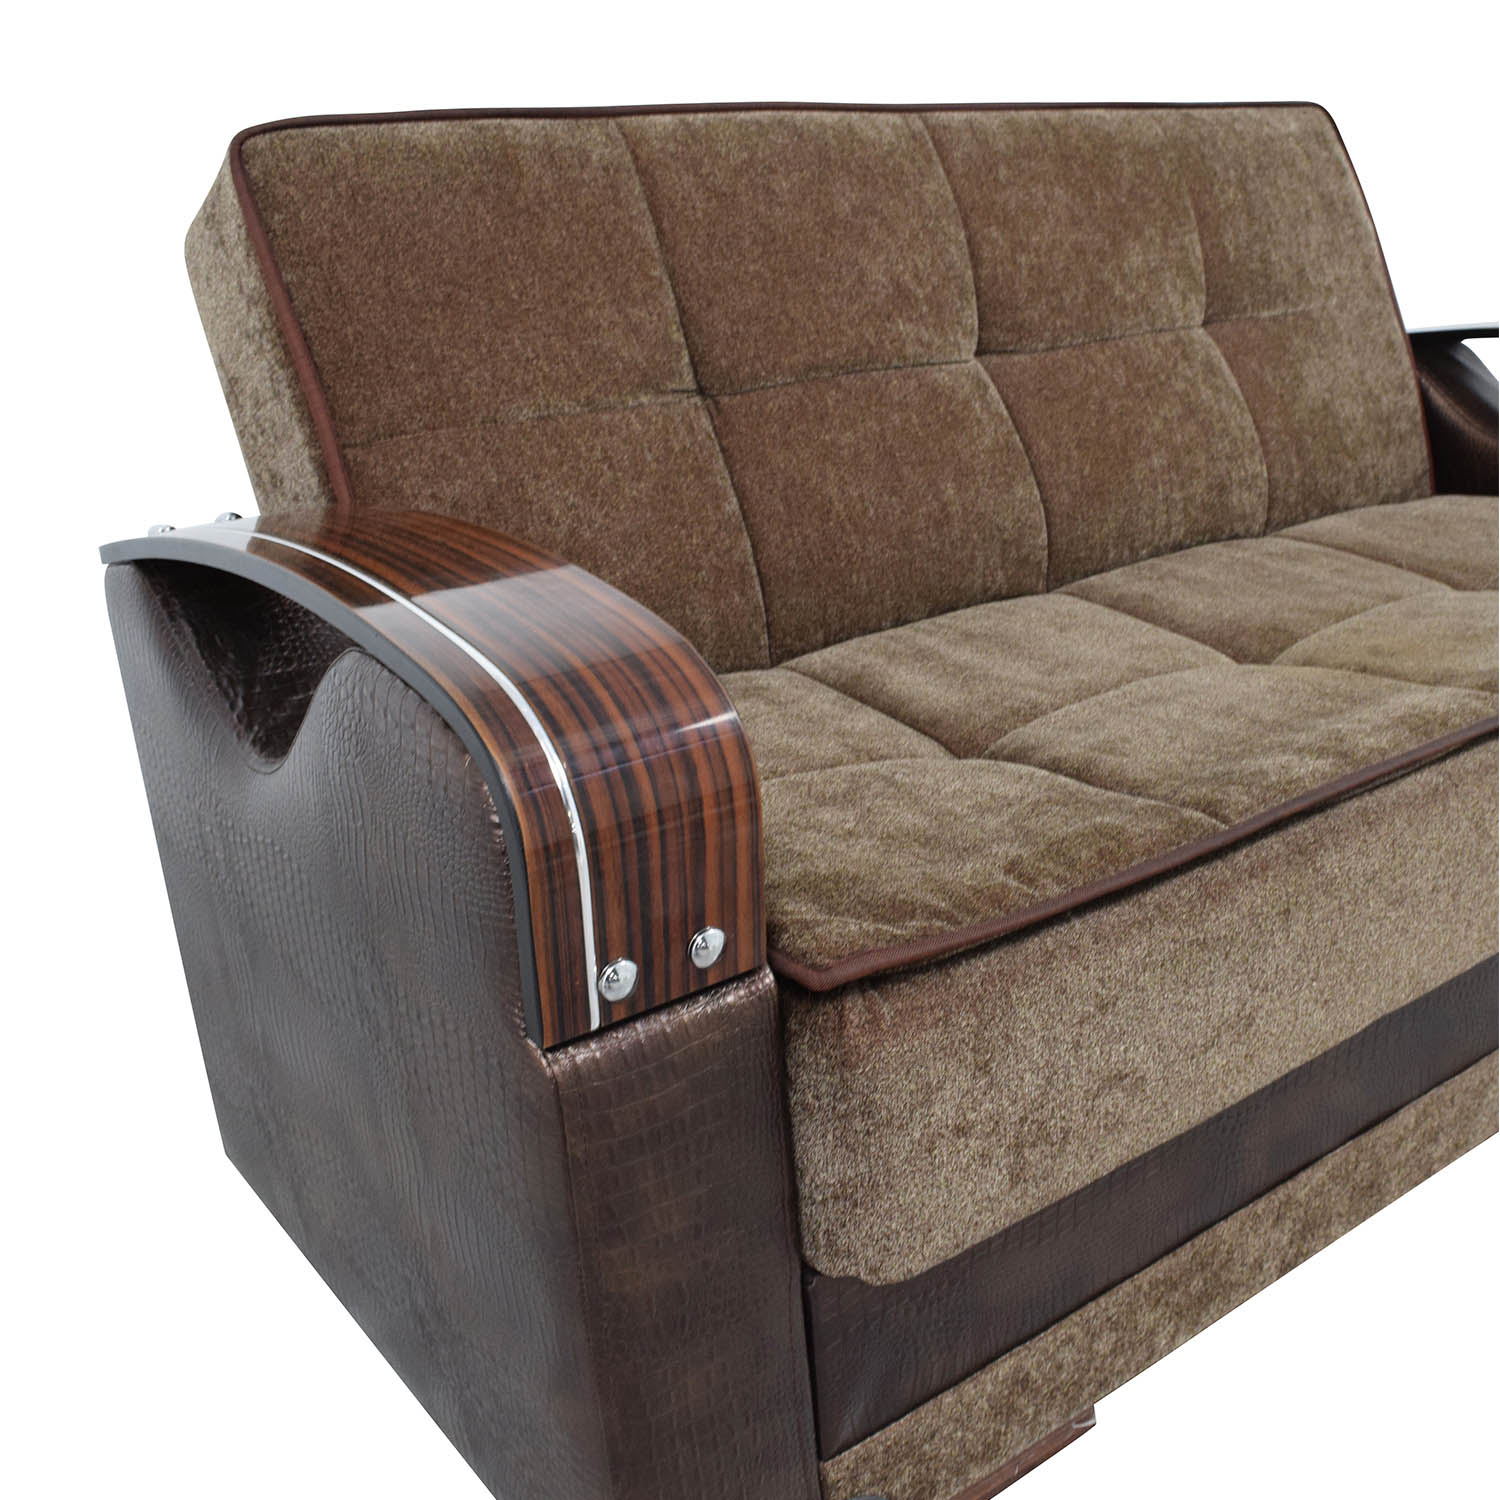 Brown Futon Love Seat with Wooden Armrest sale